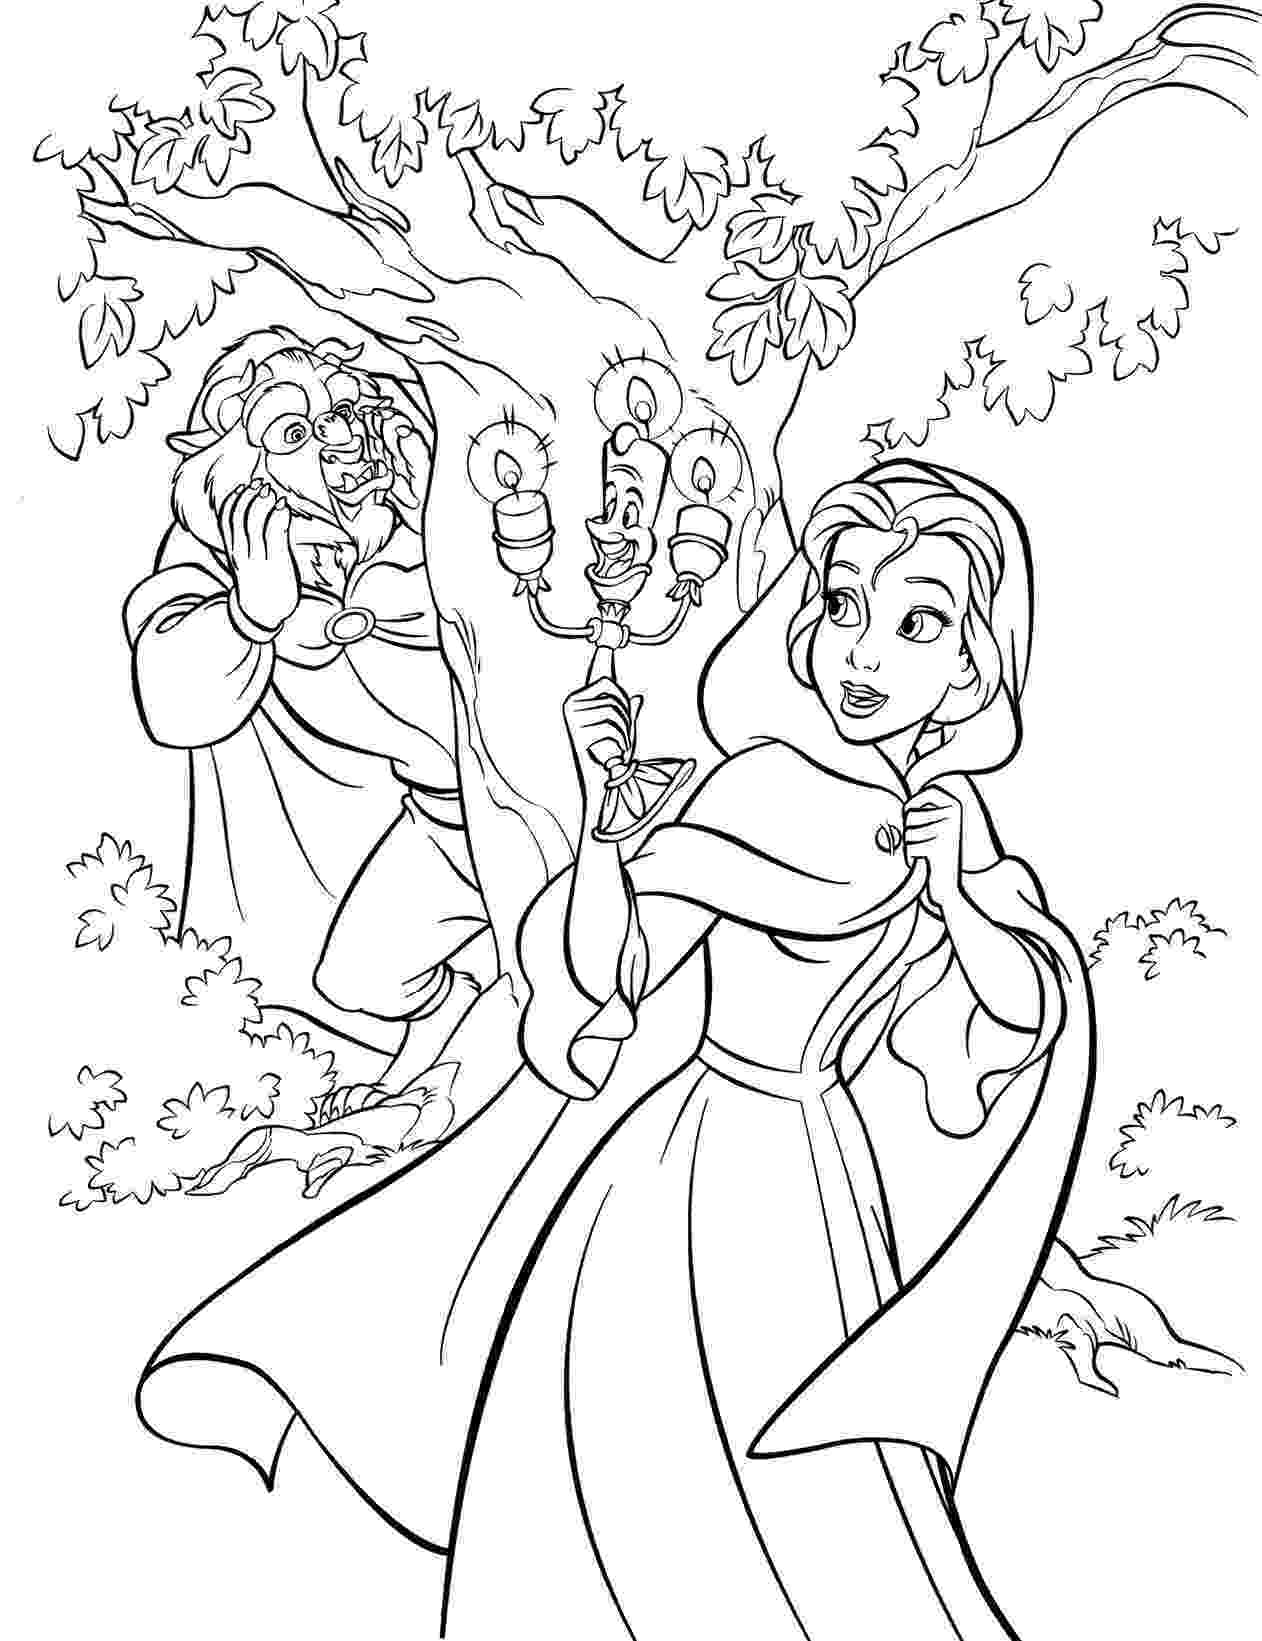 beauty and the beast coloring pages walt disney pictures cute kawaii resources page 2 and beast pages the beauty coloring